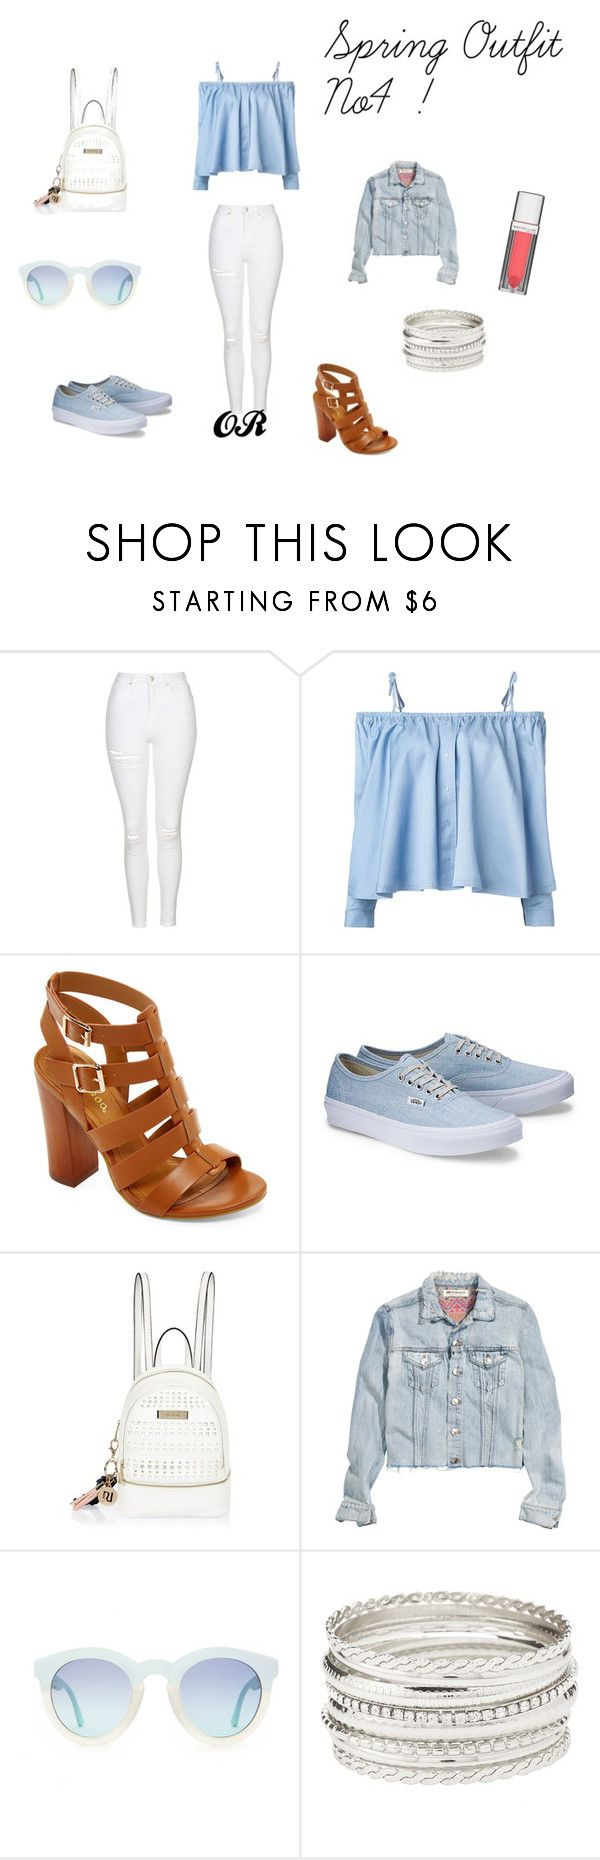 Spring Outfit No4 by vas0an on Polyvore featuring Sandy Liang, H&M, Topshop, Bamboo, River Island, Charlotte Russe and Maybelline